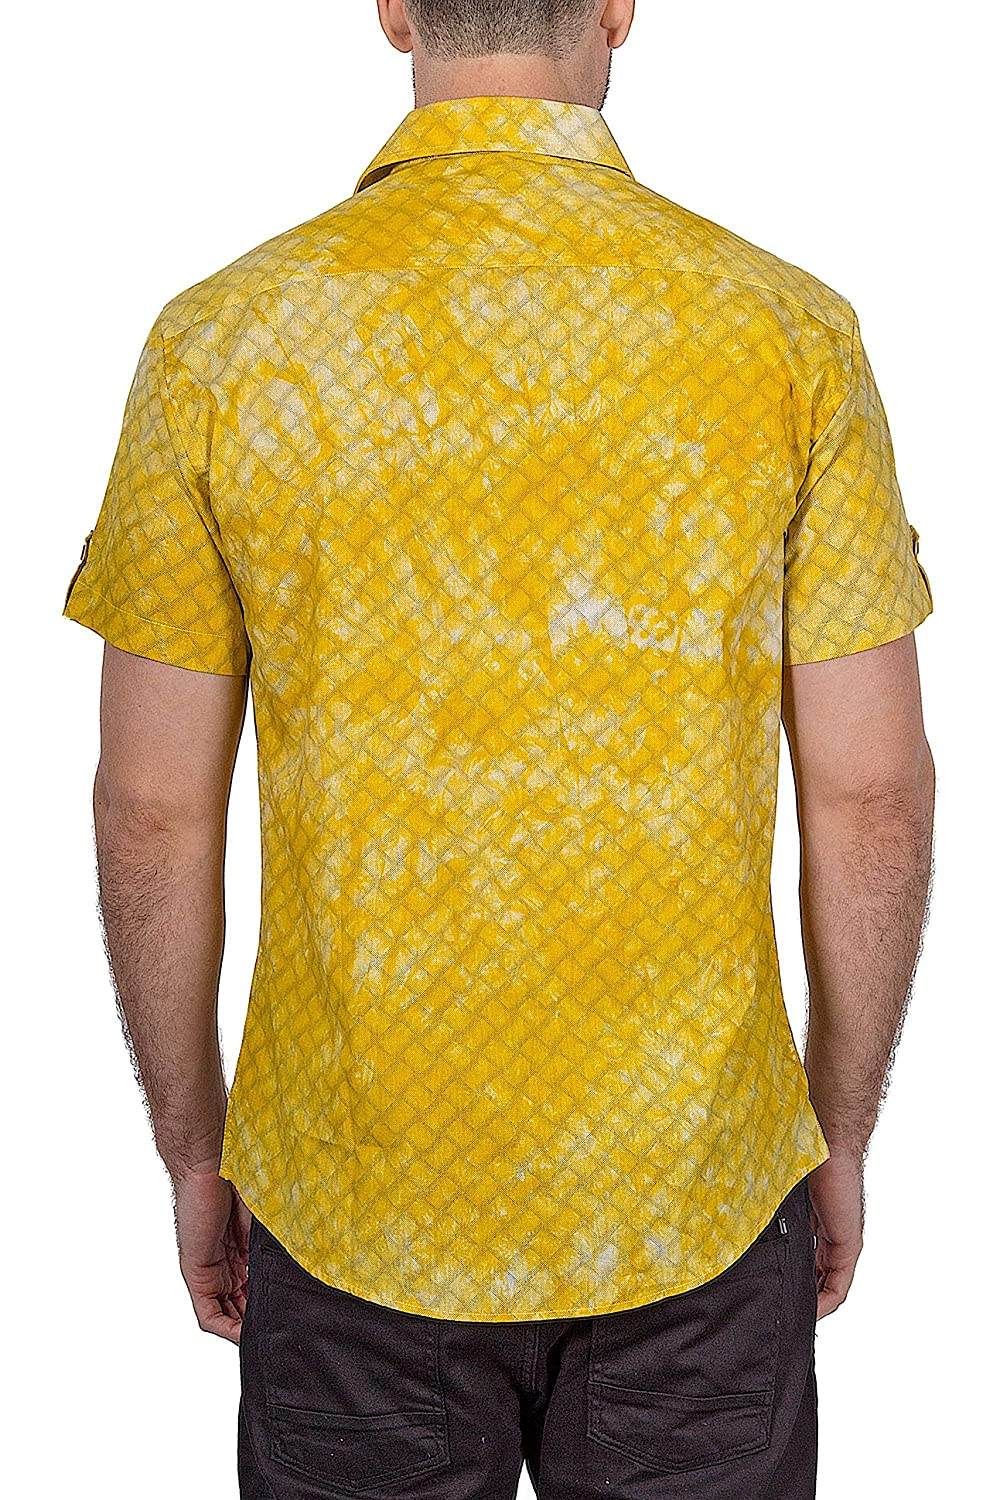 Bespoke Moda Bespoke 182103 Mens Yellow Button Up Short Sleeve